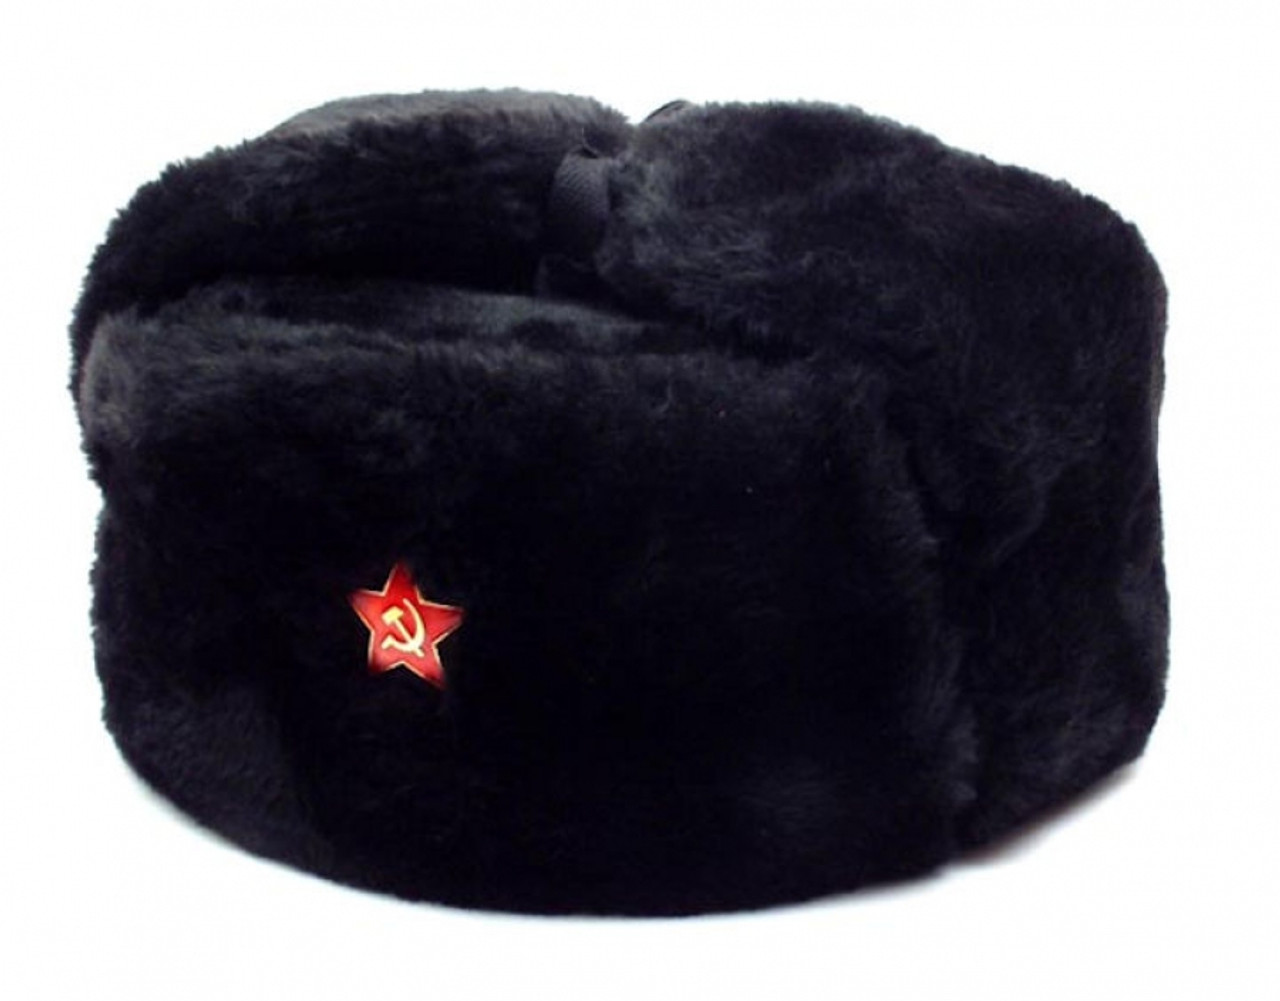 3dc4b4ca5cb Authentic Russian Military Black Ushanka Hat Red Star Hammer and Sickle